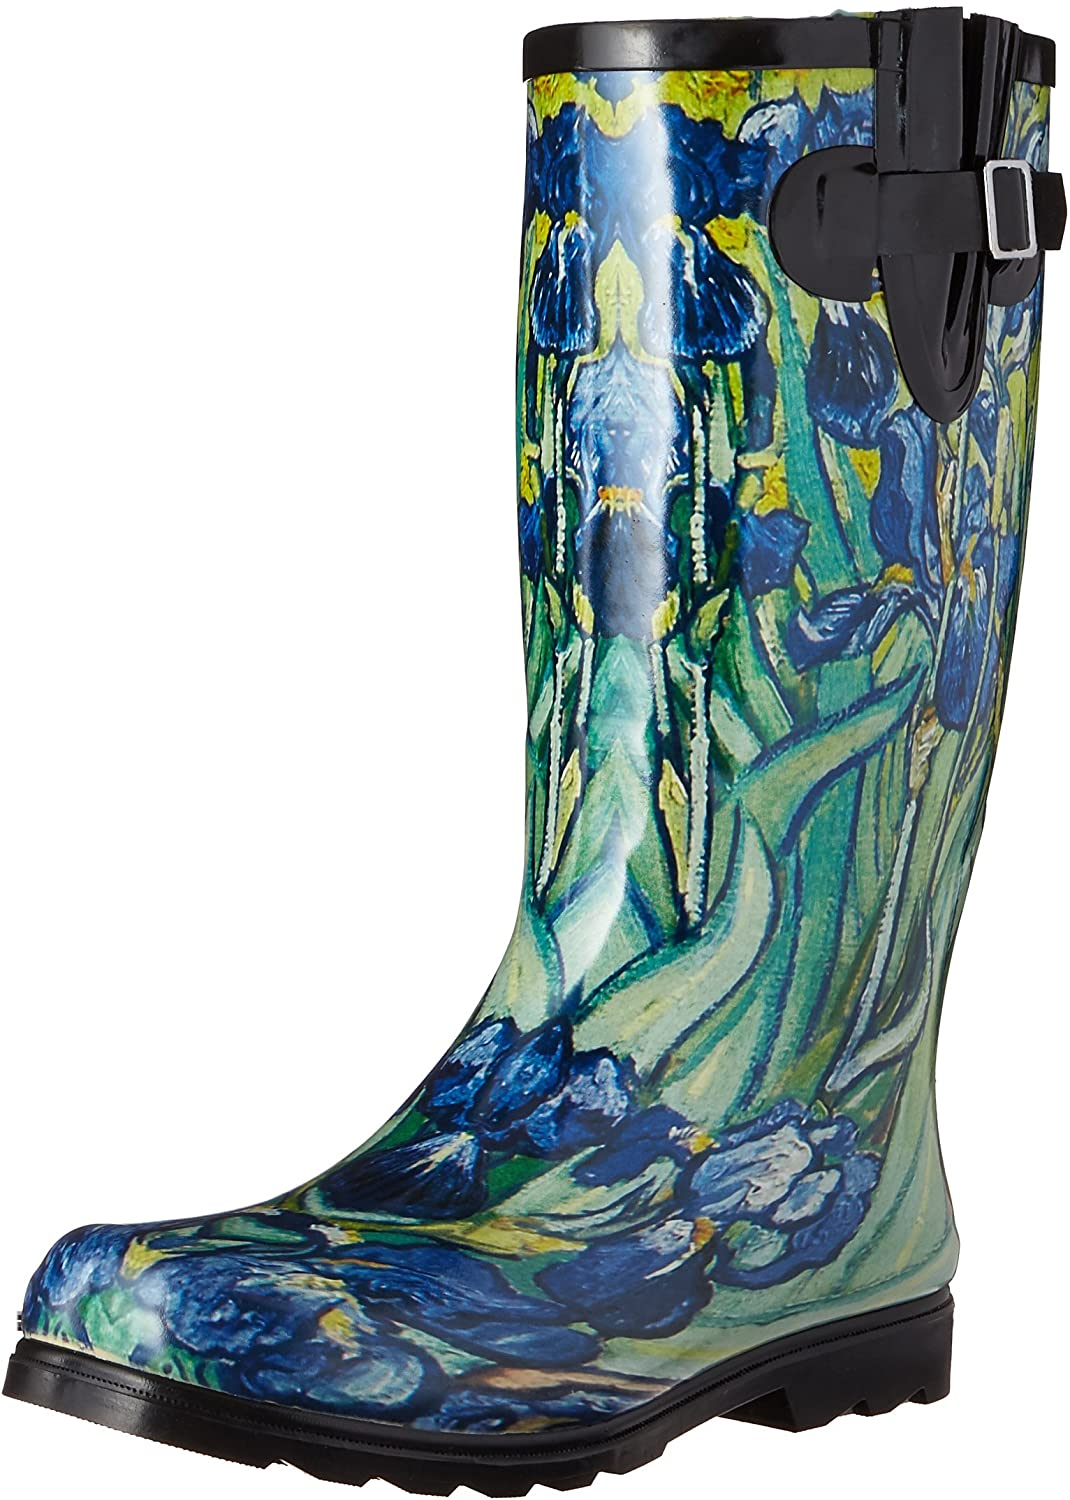 Review of Nomad Women's Puddles Rain Boot